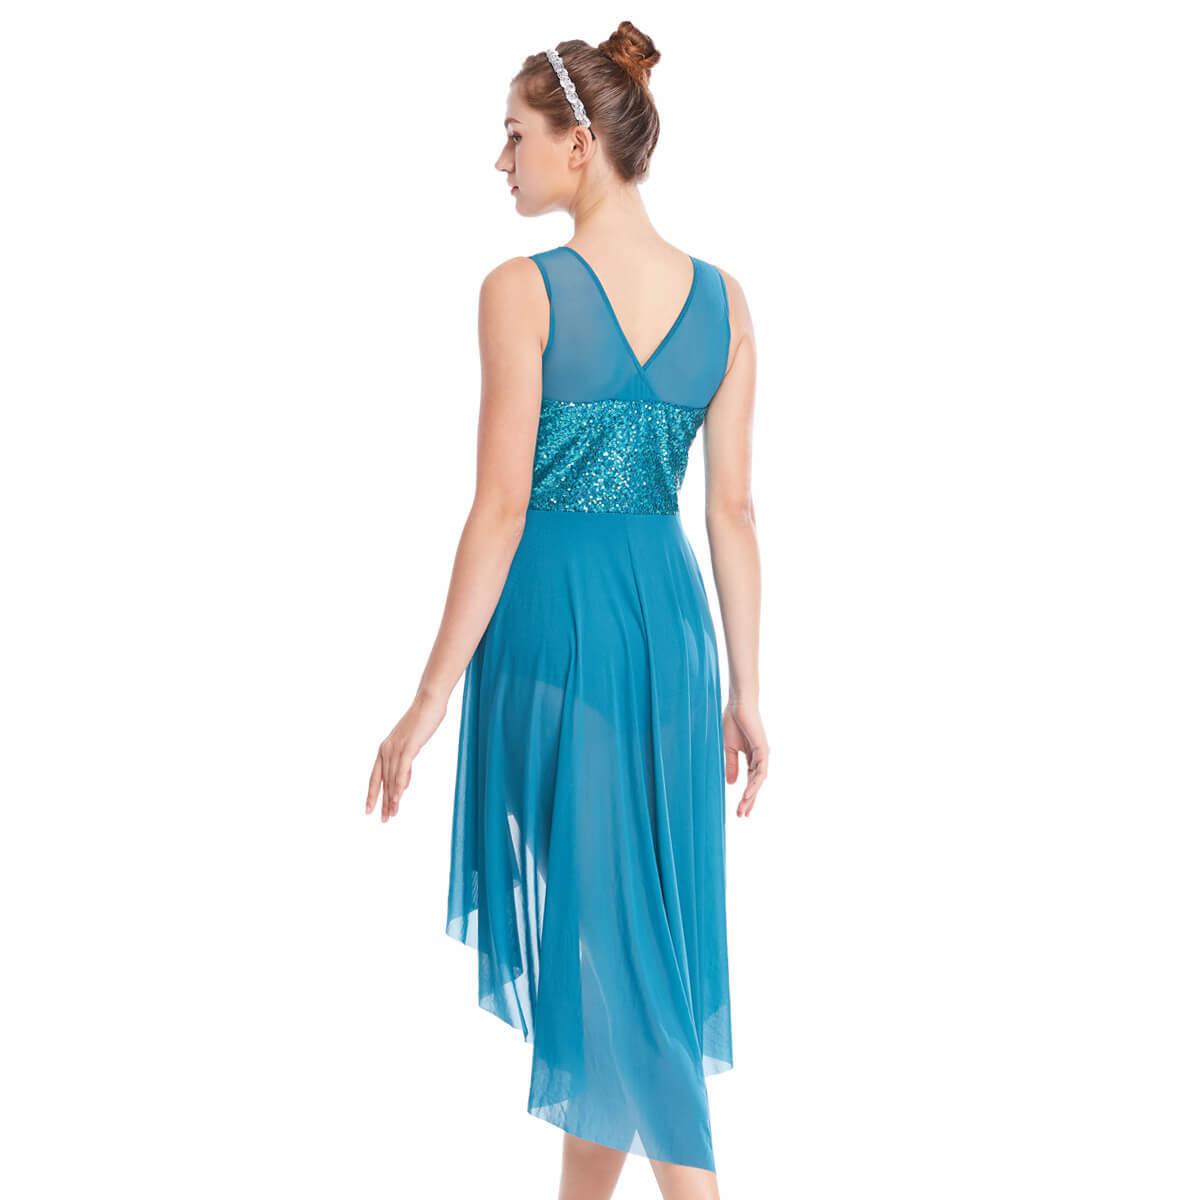 Flourish High-low Lyrical Dress with Asymmetric Full Round Spiral Cut Skirt Mesh Sequined Joints Tank Top